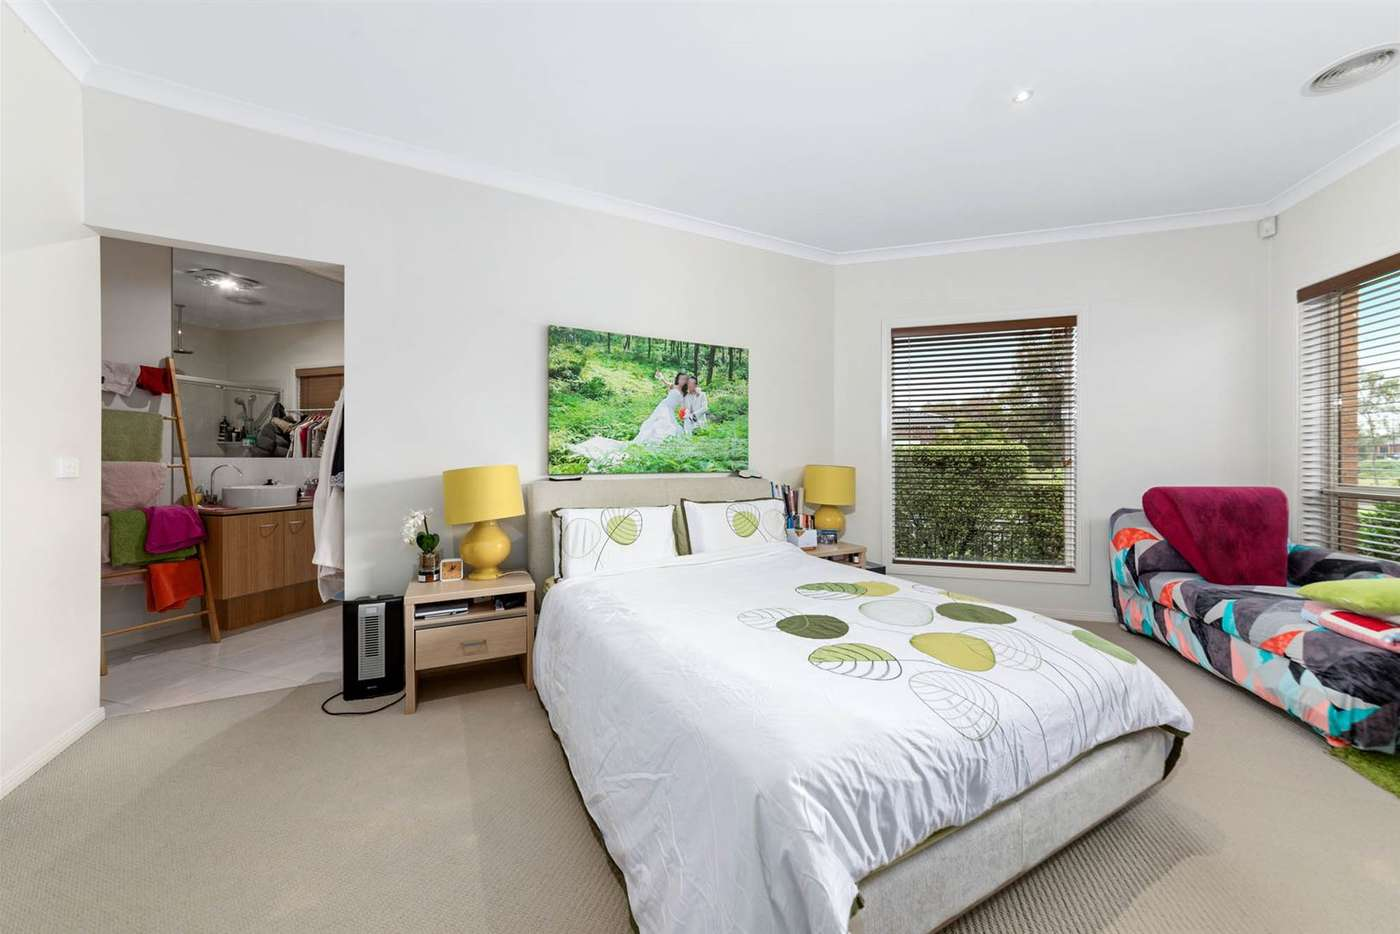 Seventh view of Homely house listing, 5 Camelot Drive, Tarneit VIC 3029